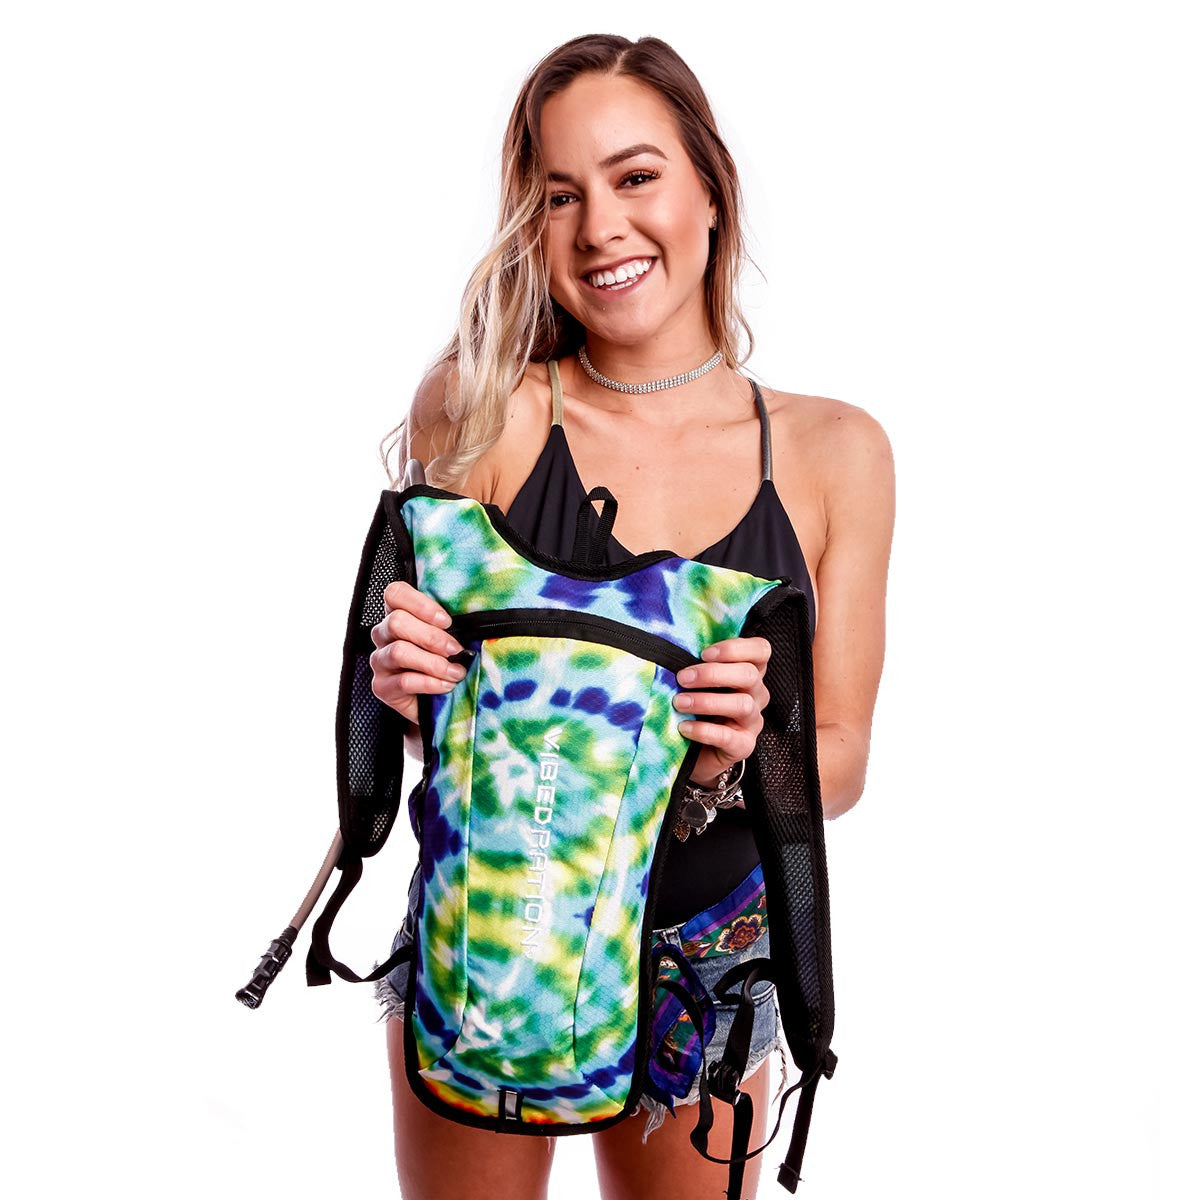 Female holding Tie Dye hydration pack